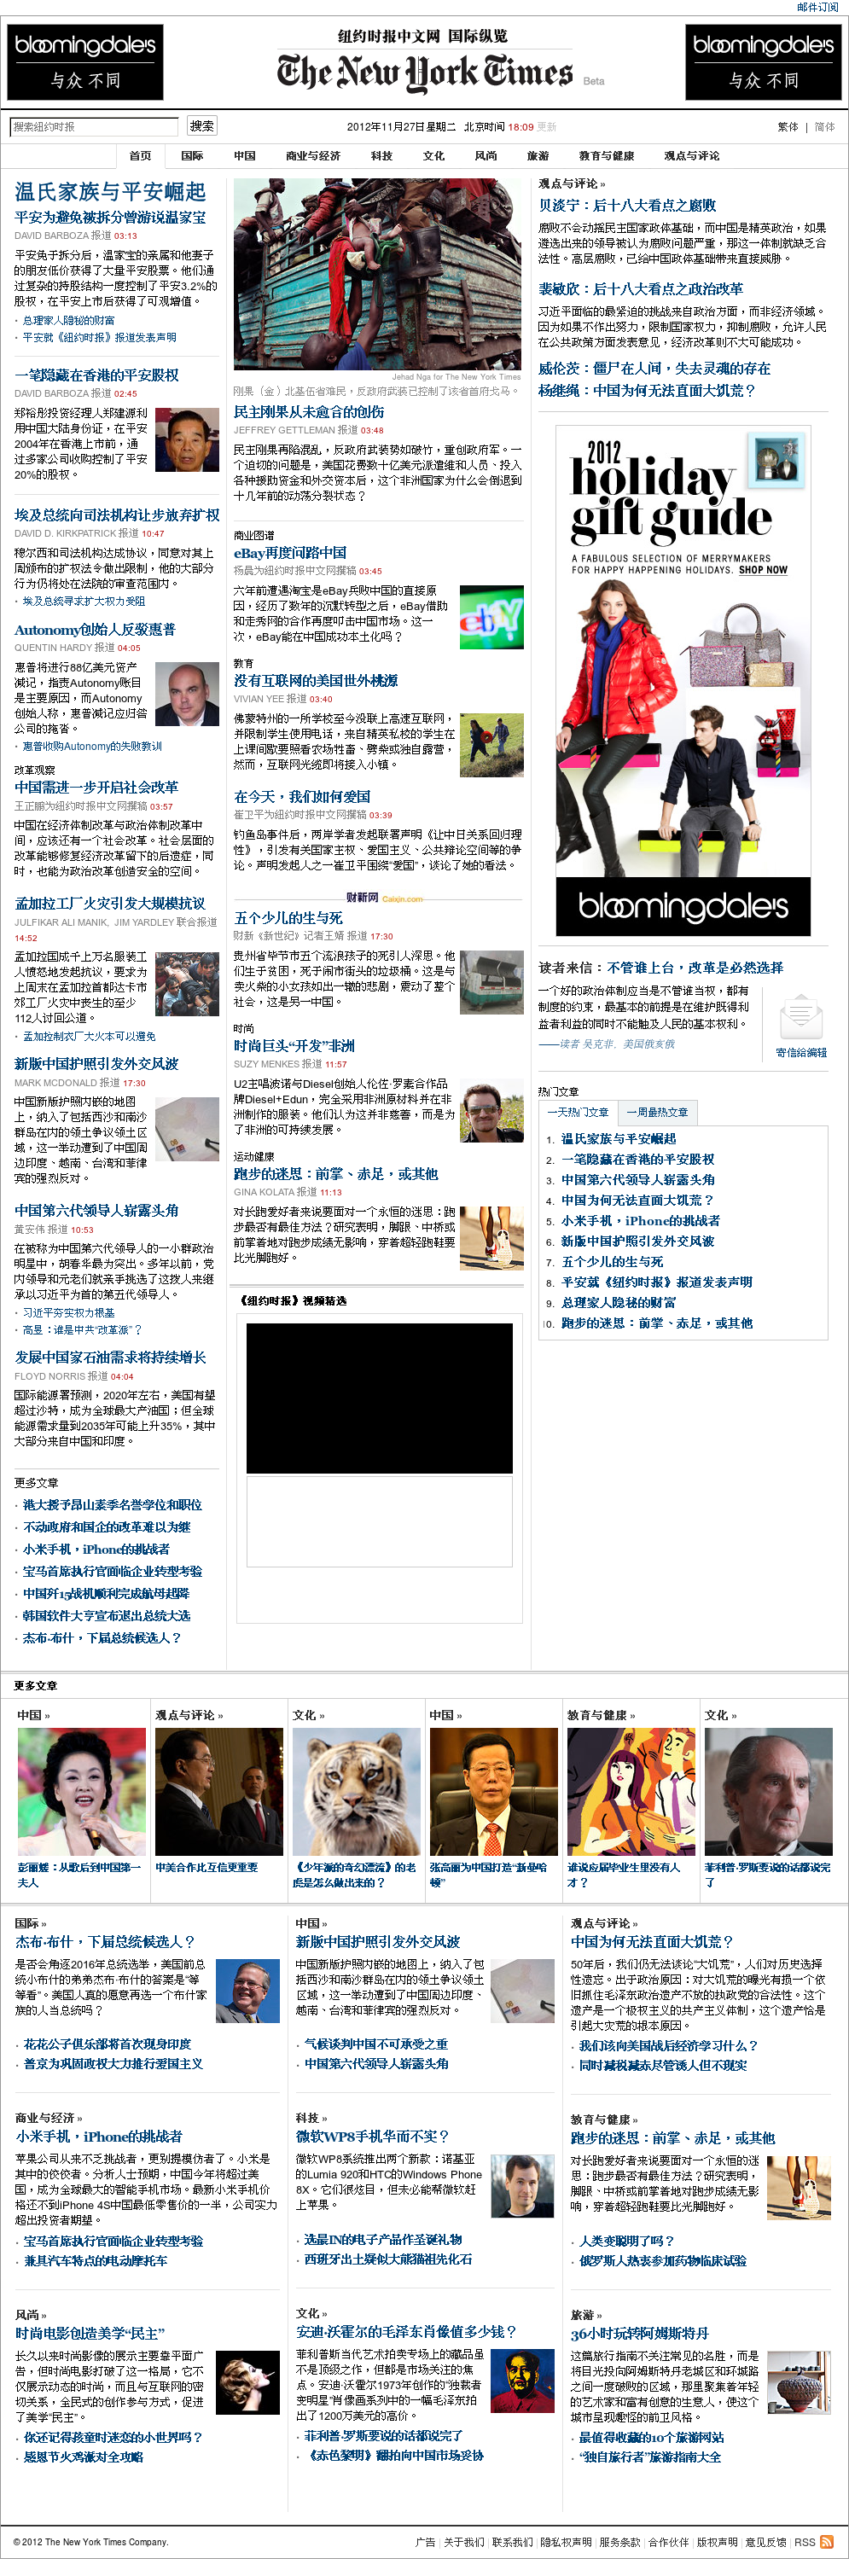 The New York Times (Chinese) at Tuesday Nov. 27, 2012, 10:20 a.m. UTC